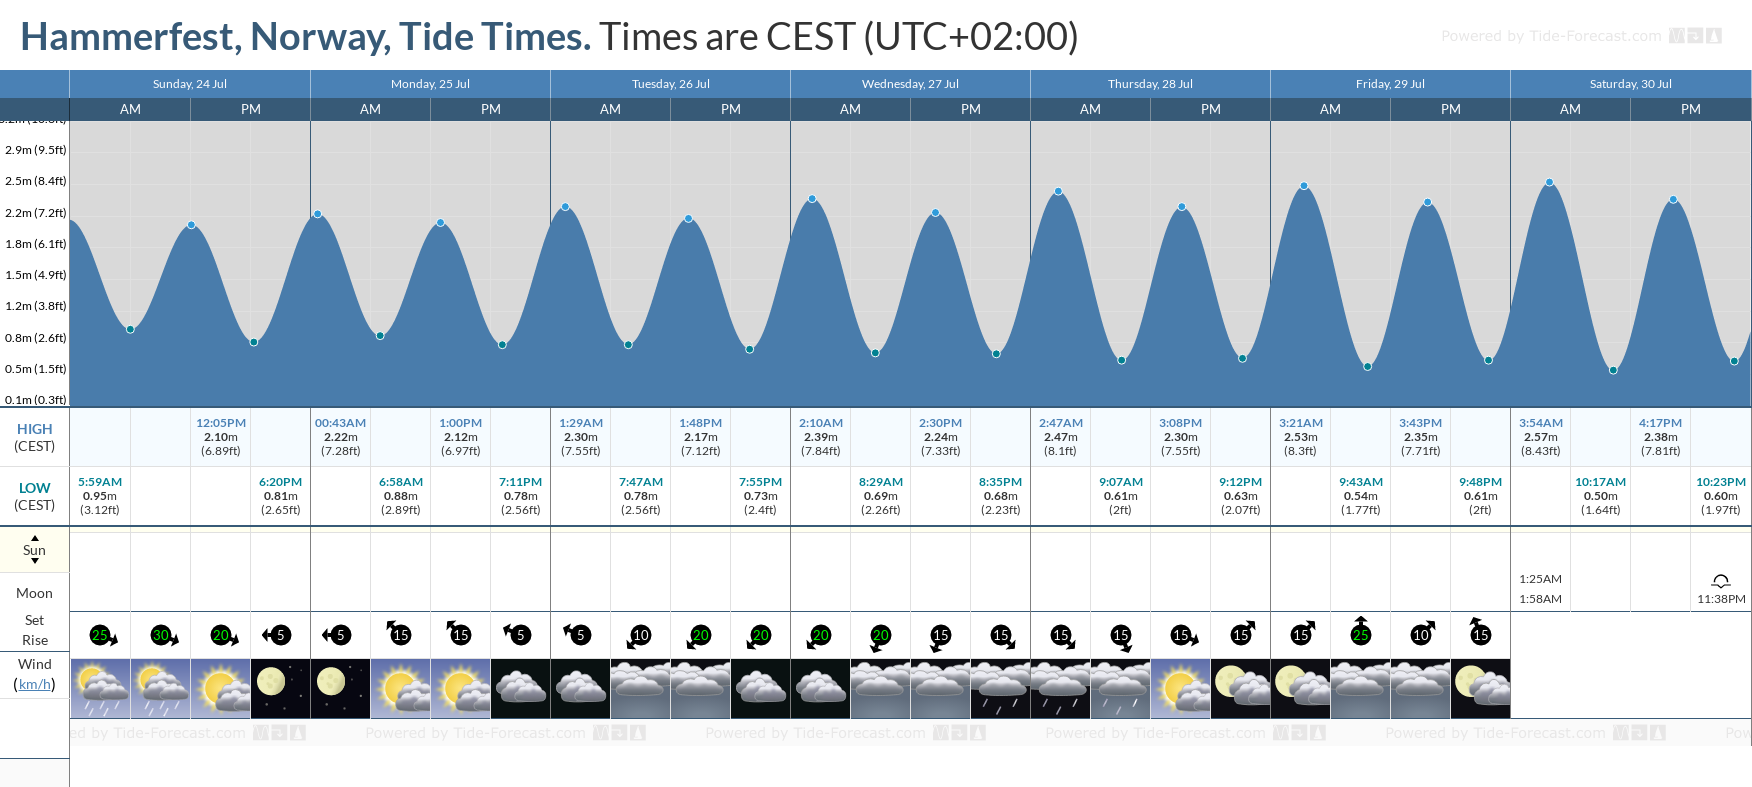 Hammerfest, Norway Tide Chart including high and low tide tide times for the next 7 days